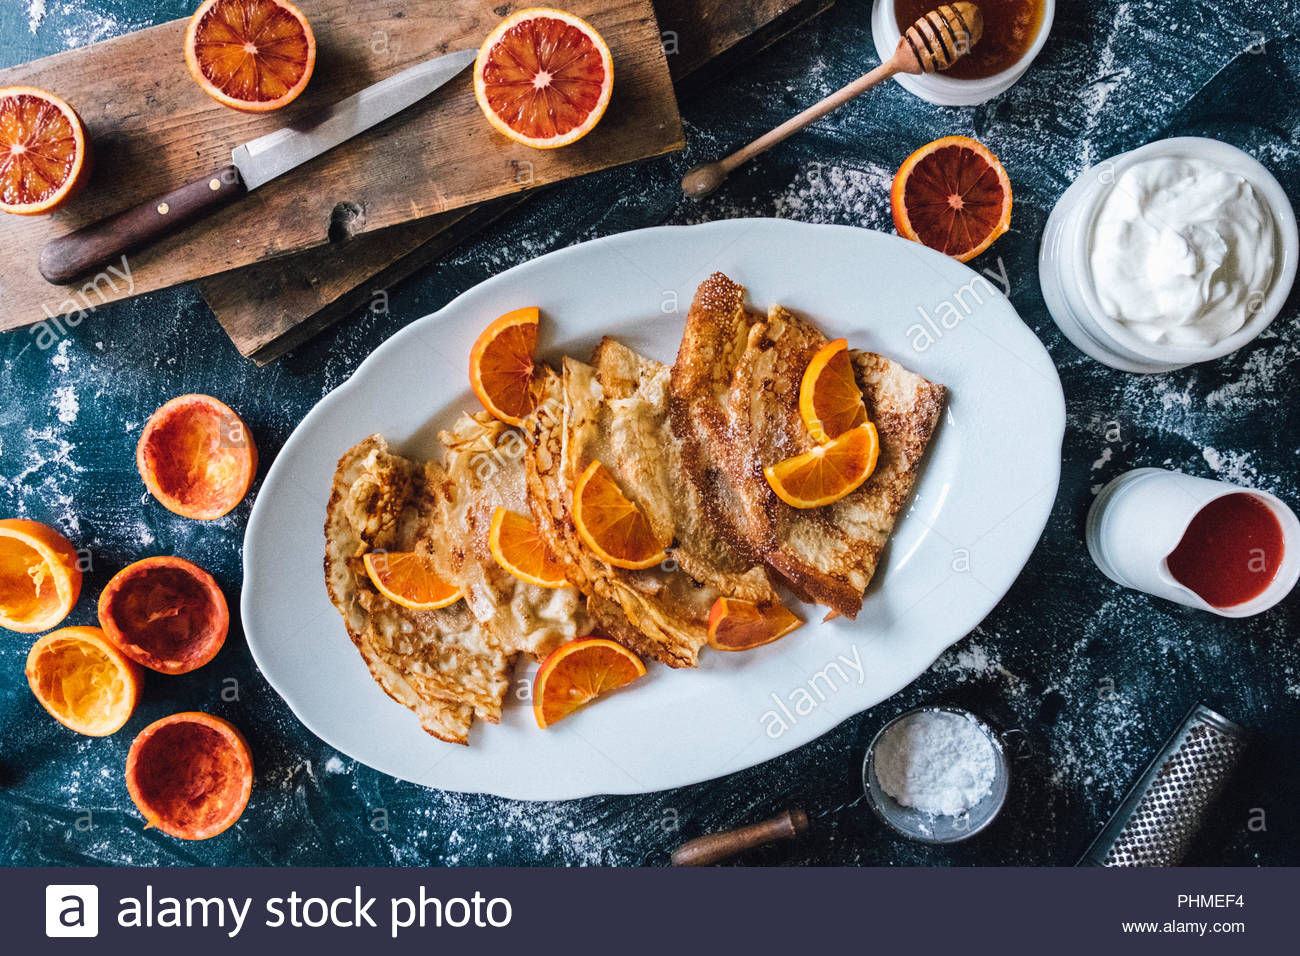 Pancakes with blood oranges - Stock Image